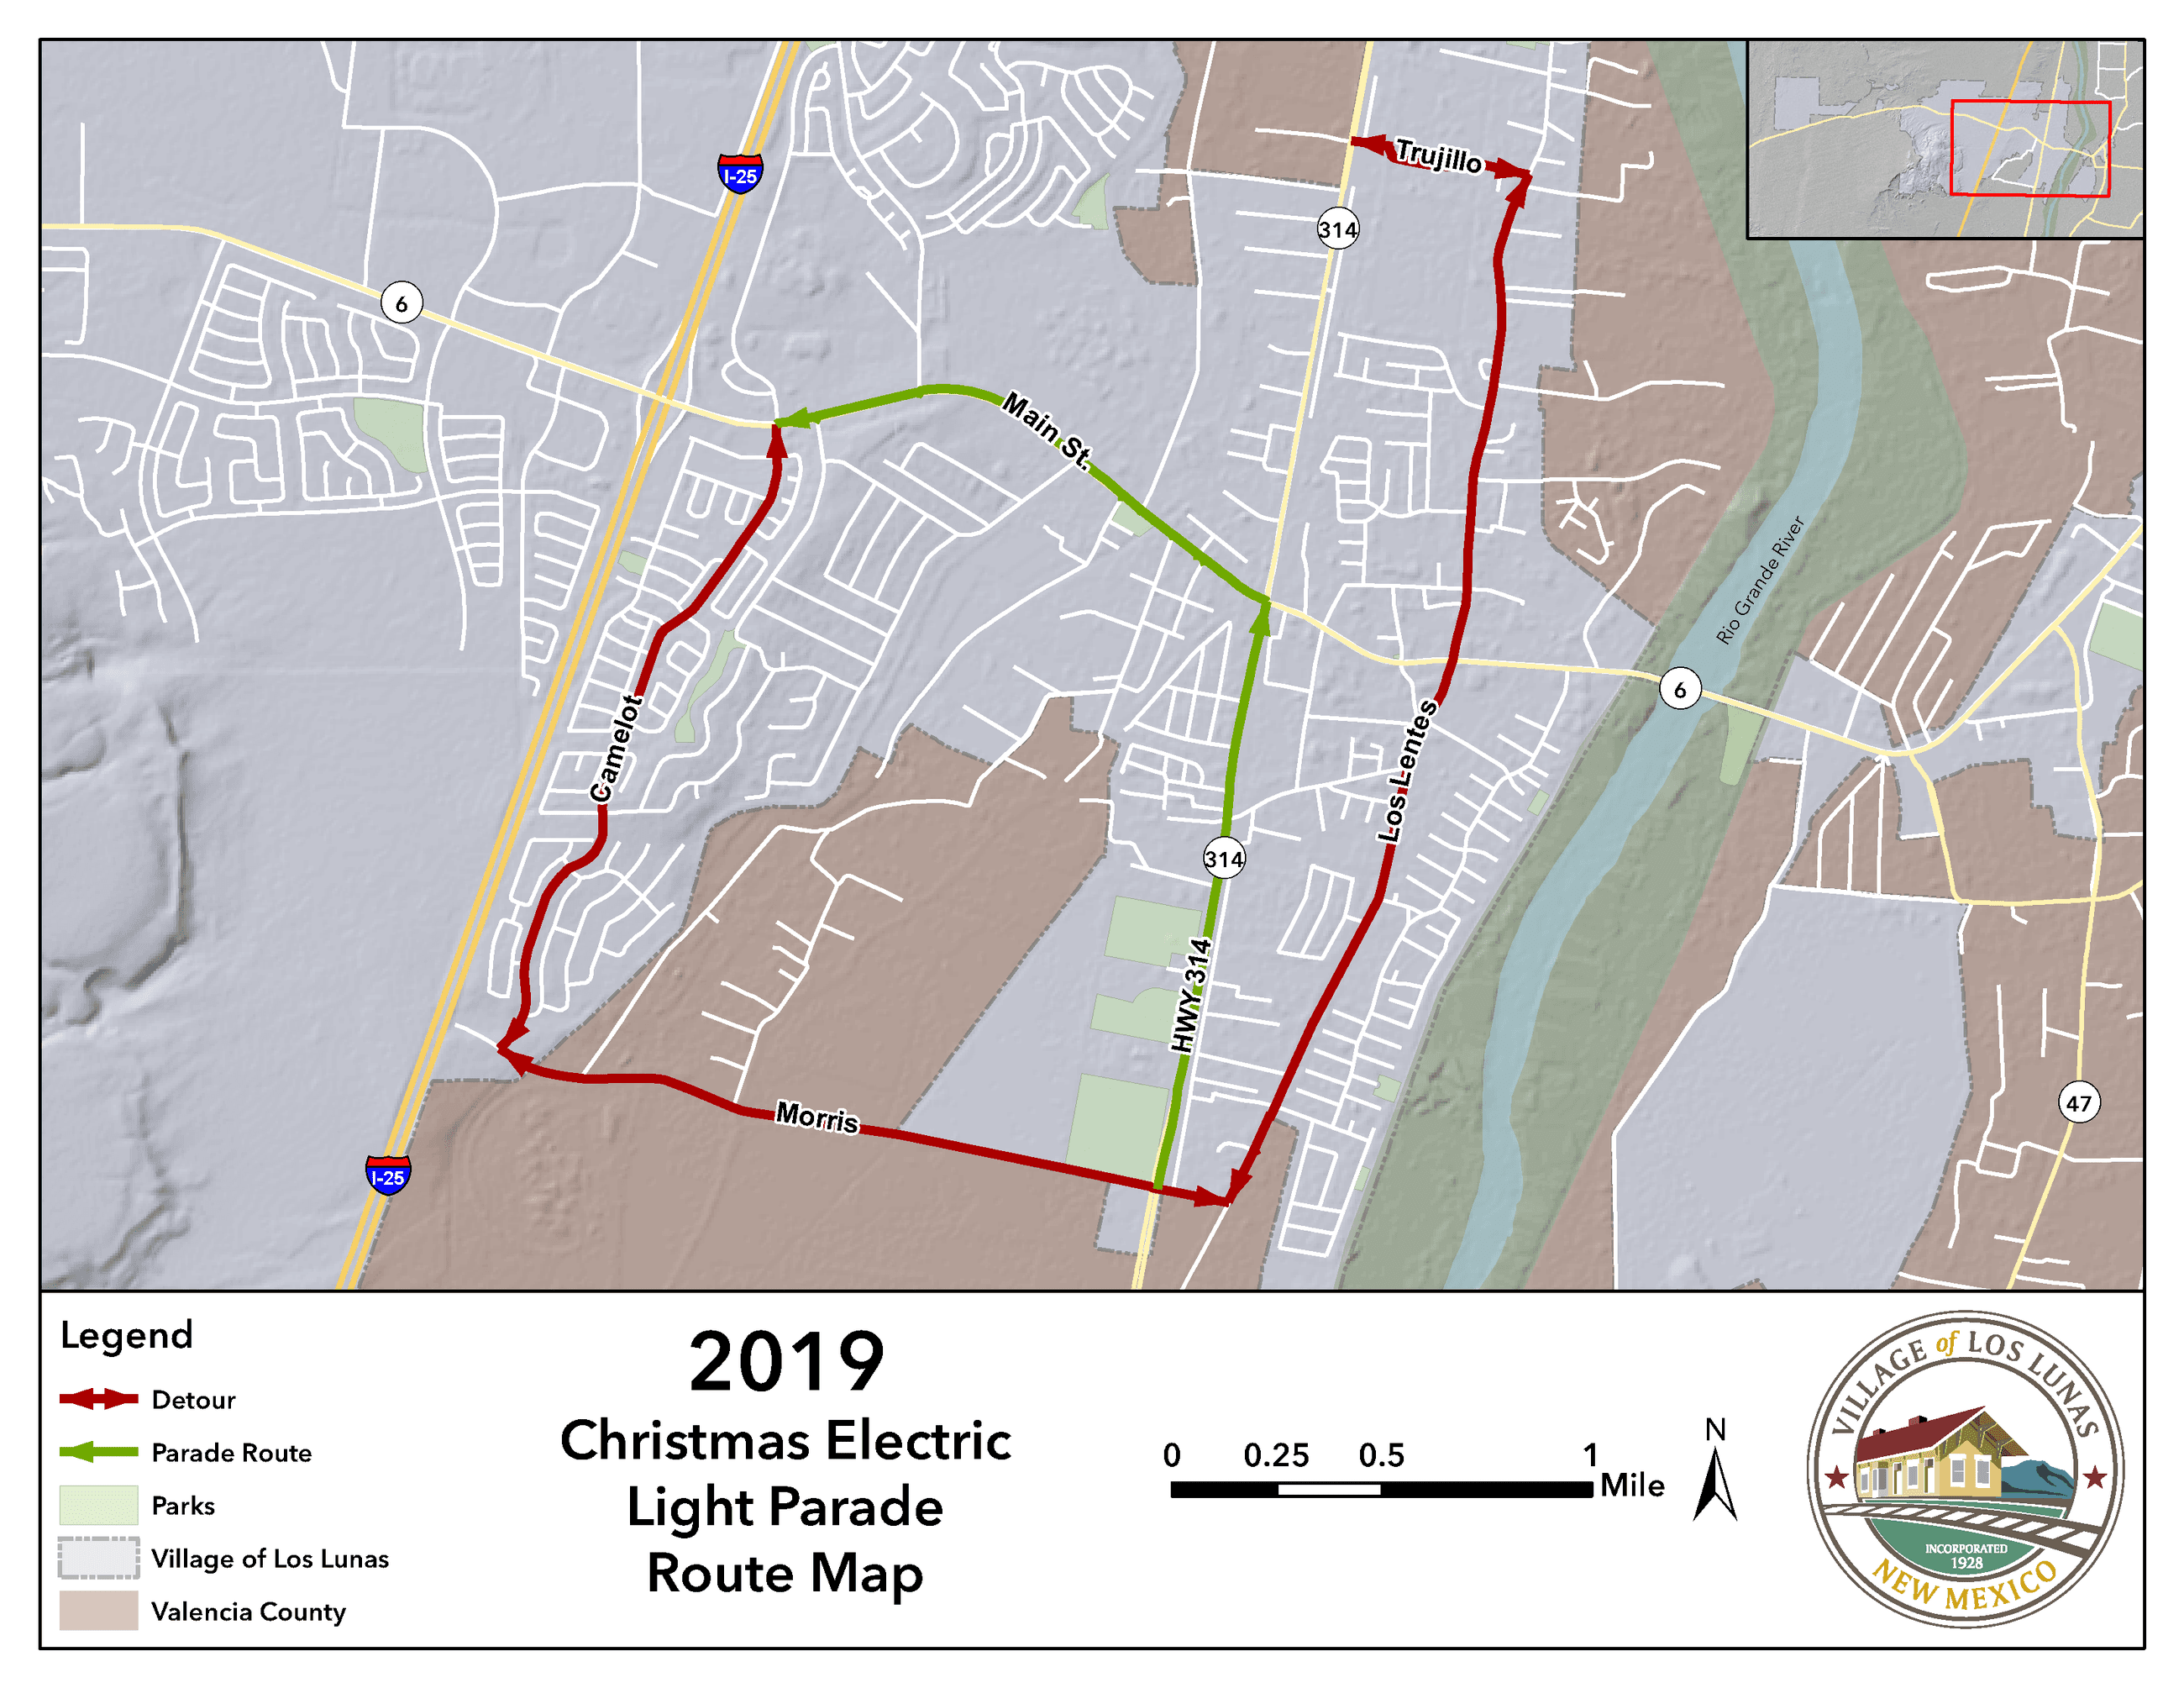 2019_Christmas_Electric_Light_Parade_Route_Map